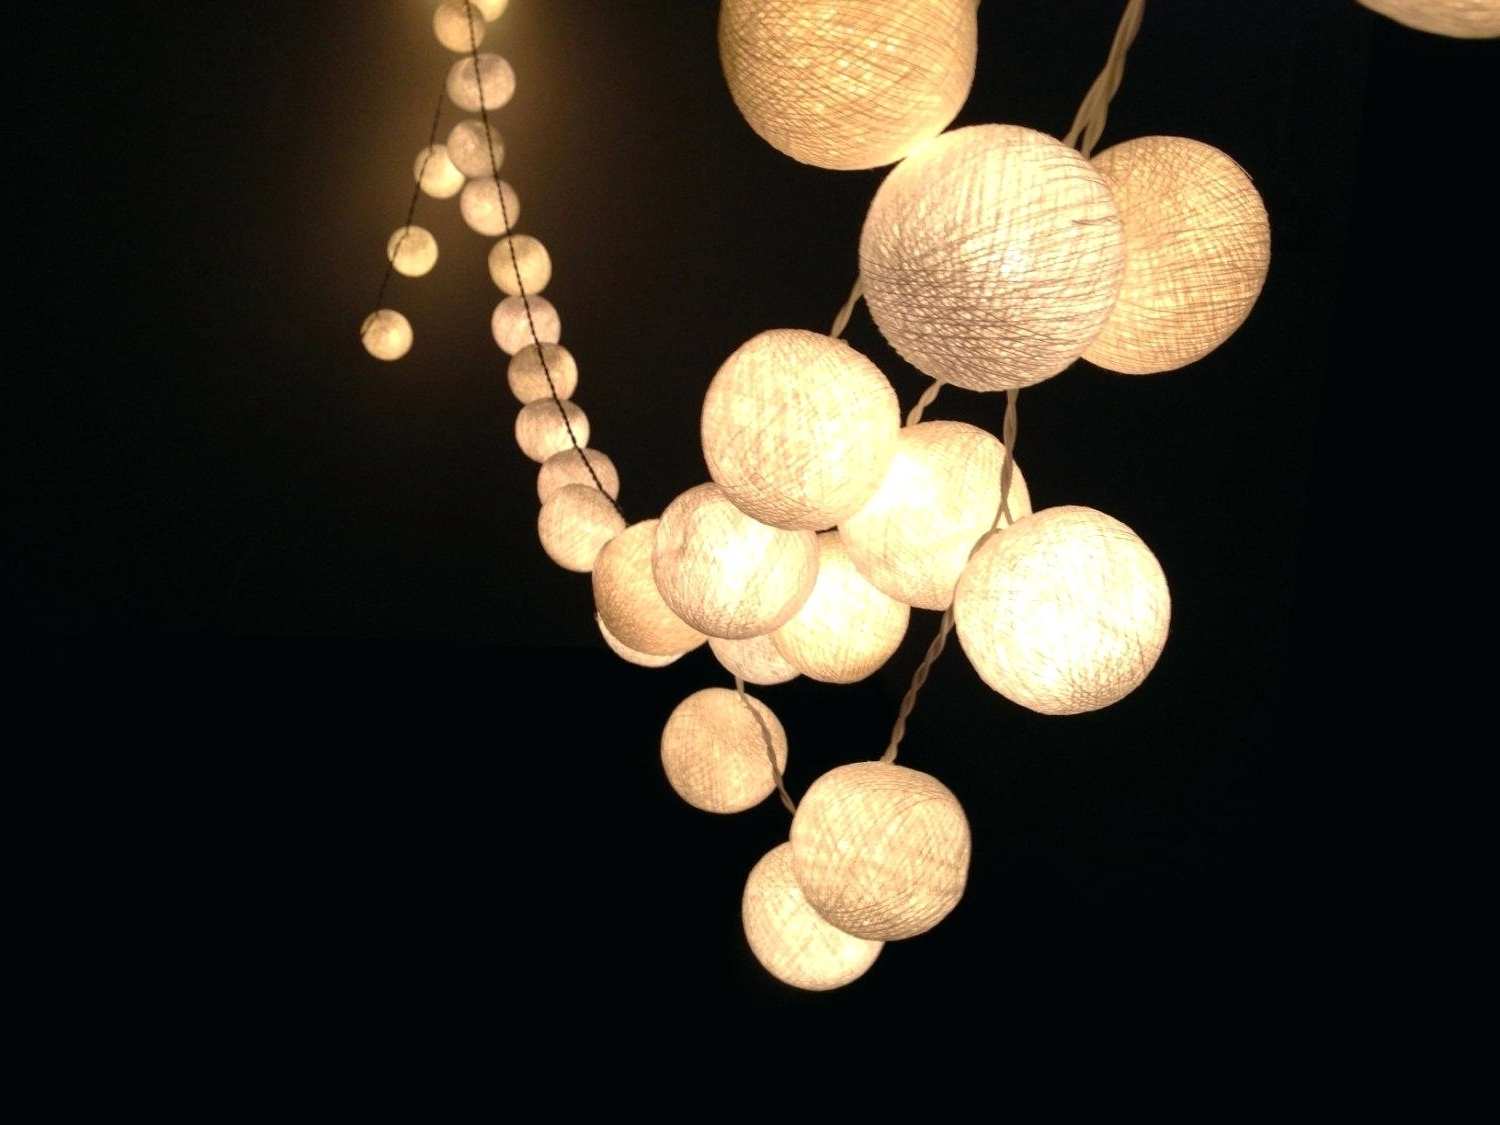 Diy : Party String Lights Australia Target Outdoor Ireland Lanterns Pertaining To Current Outdoor Hanging Lights At Target (View 20 of 20)